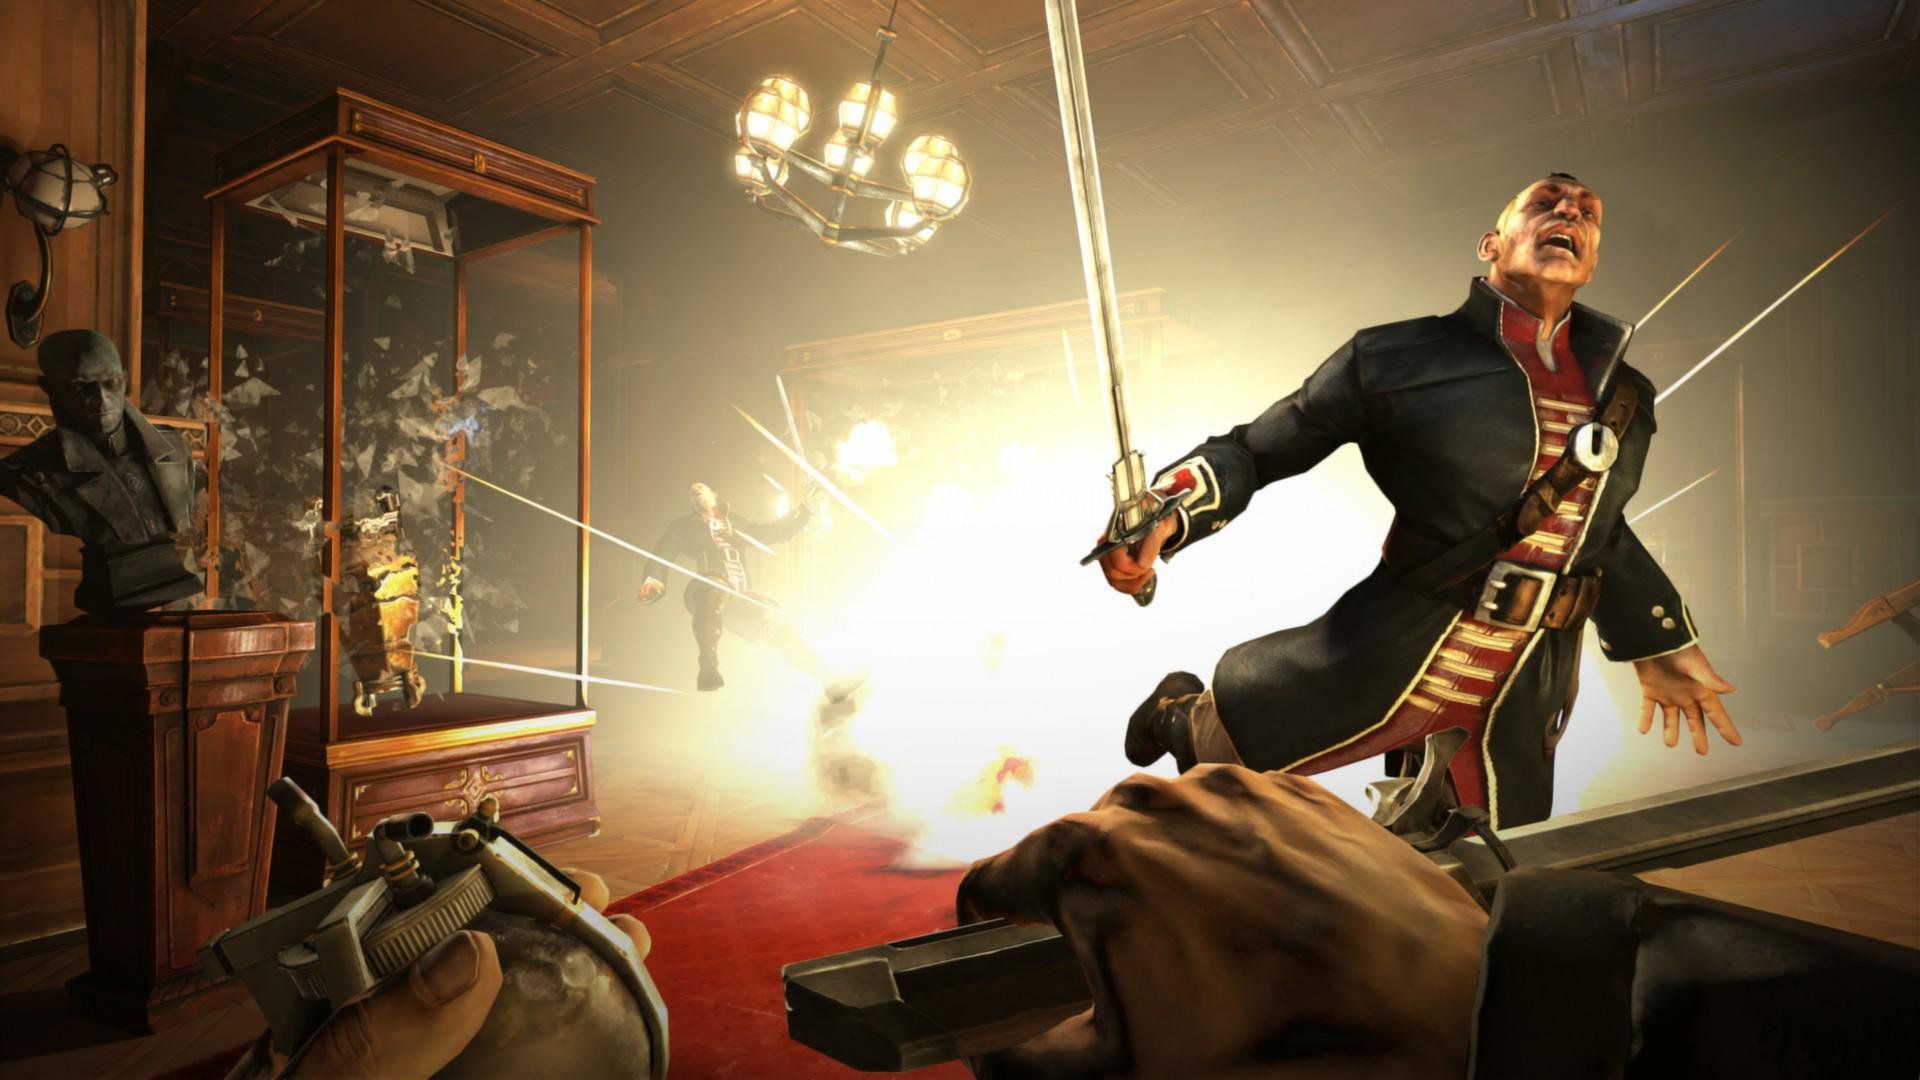 PlayStation Plus Free Games of April 2015 for PS4, PS3, and Vita